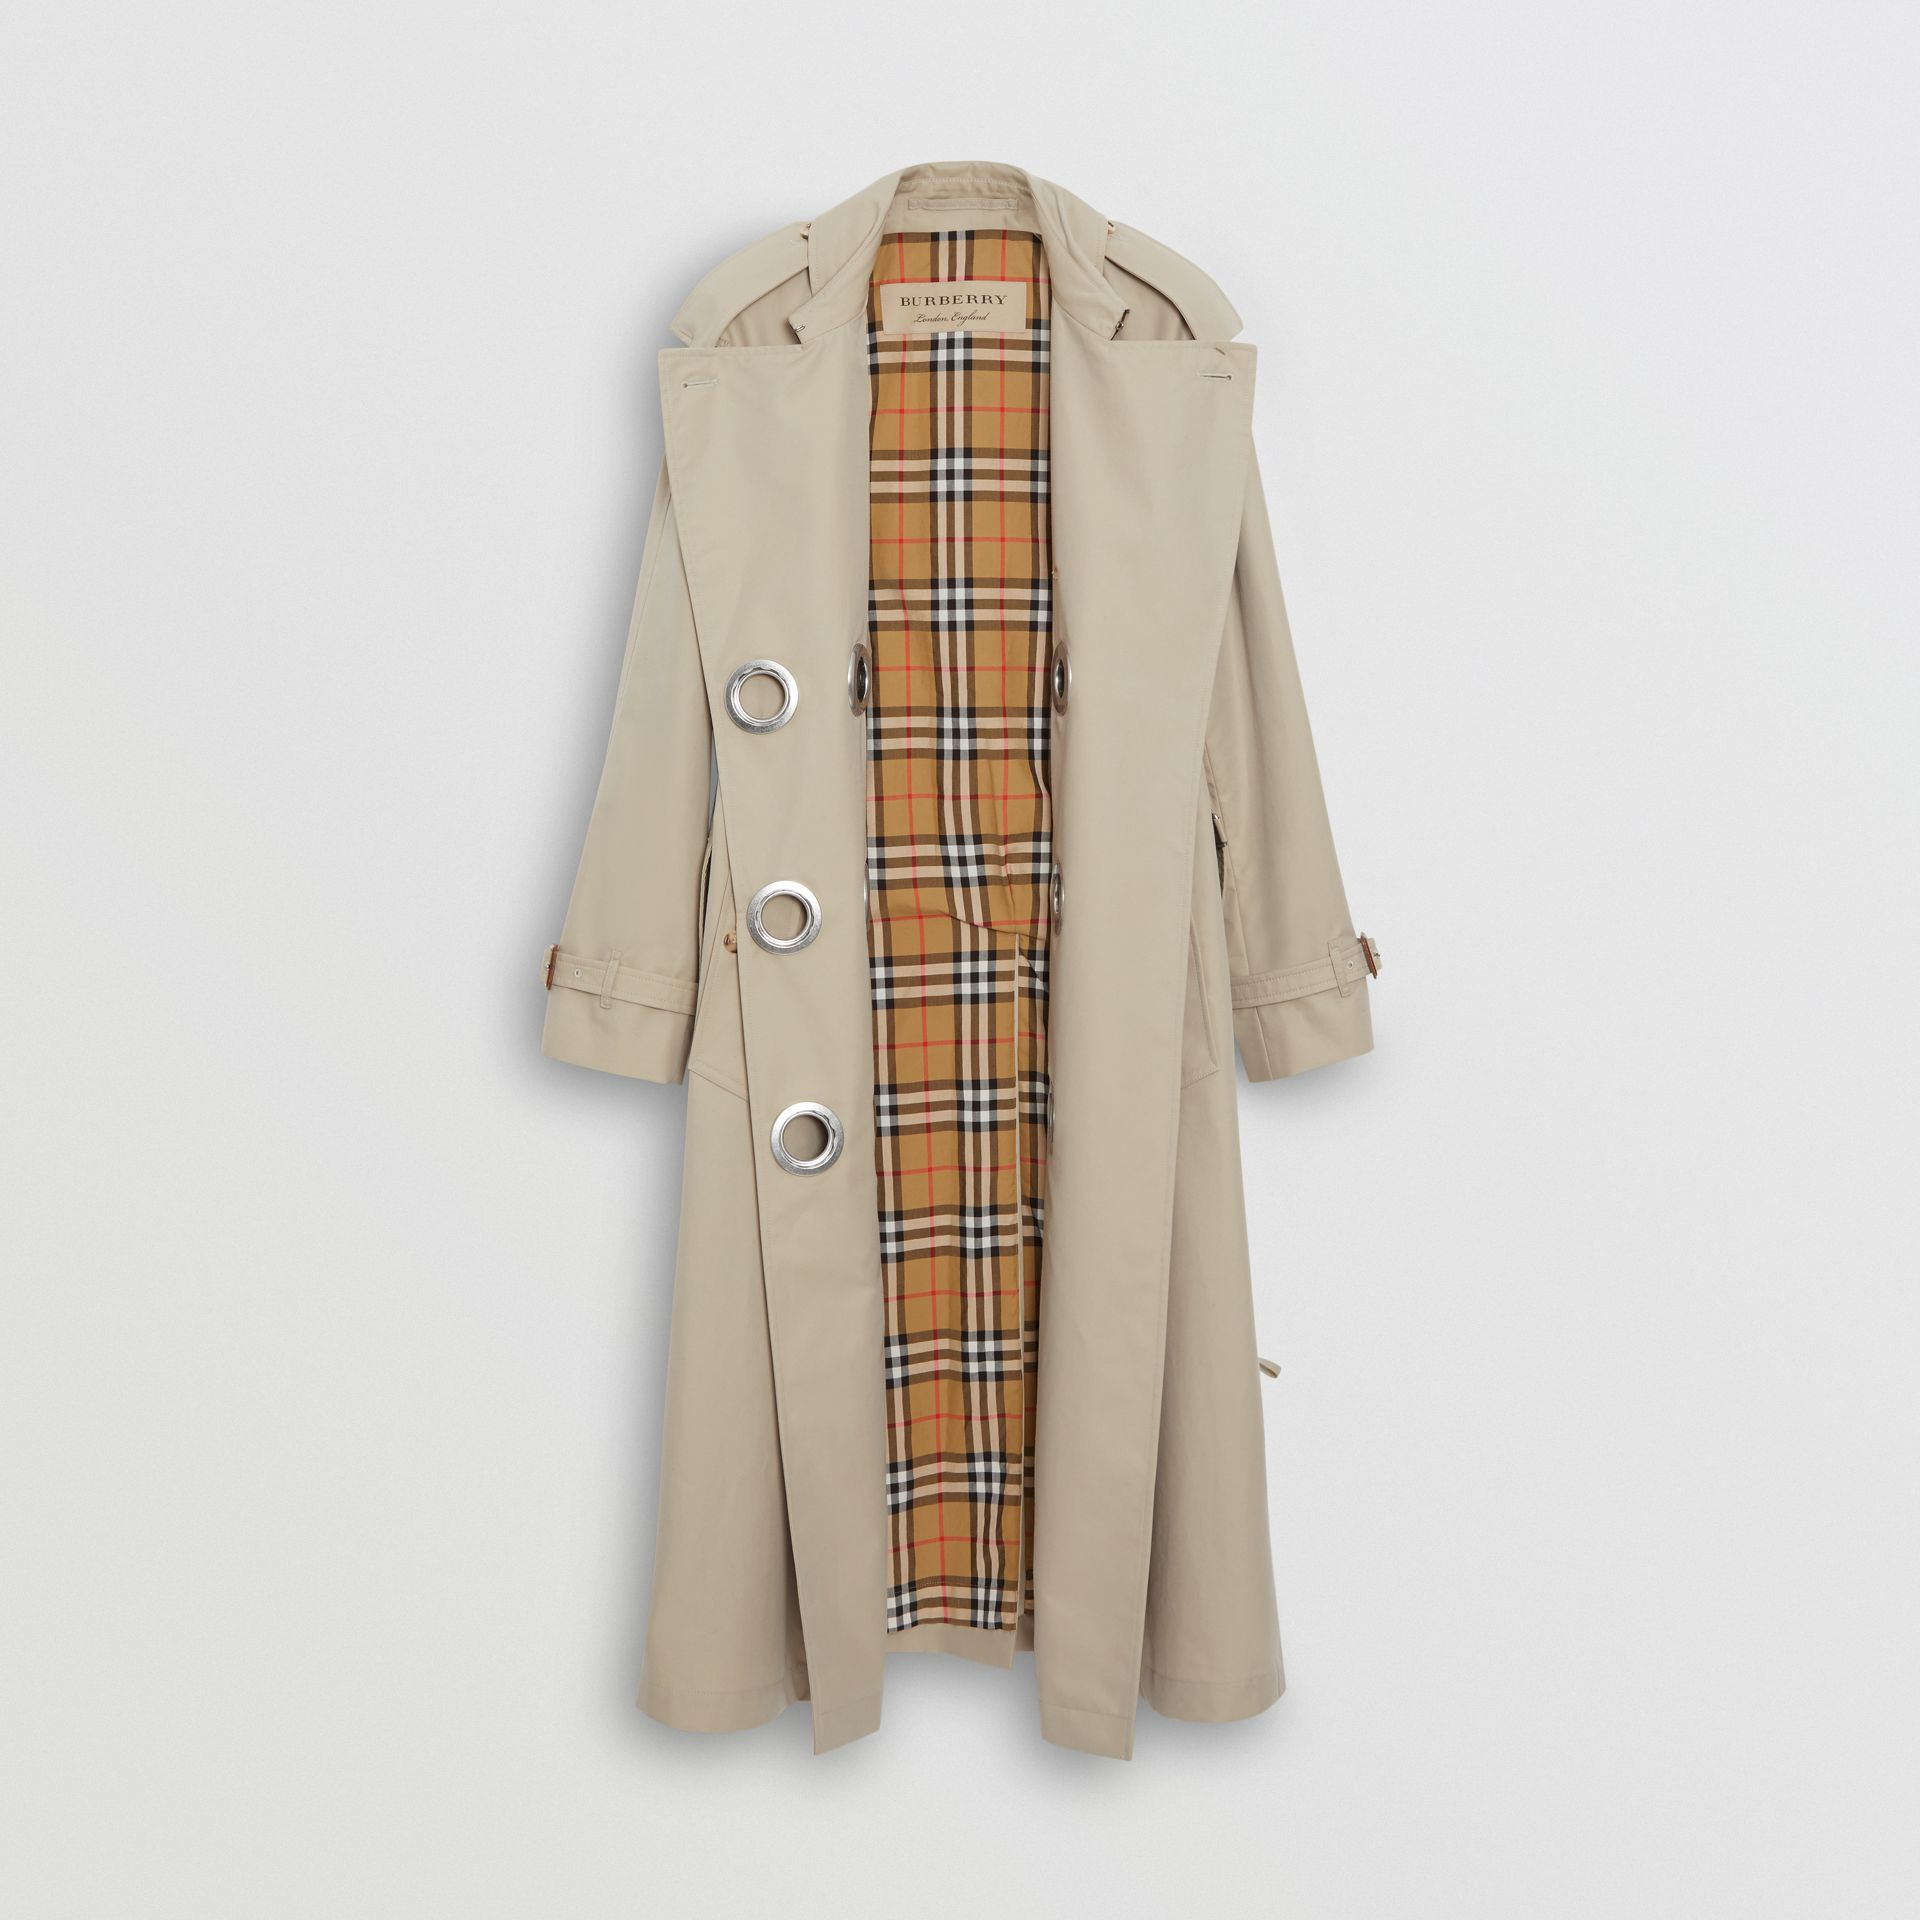 Grommet Detail Cotton Gabardine Trench Coat in Stone - Women | Burberry - gallery image 8